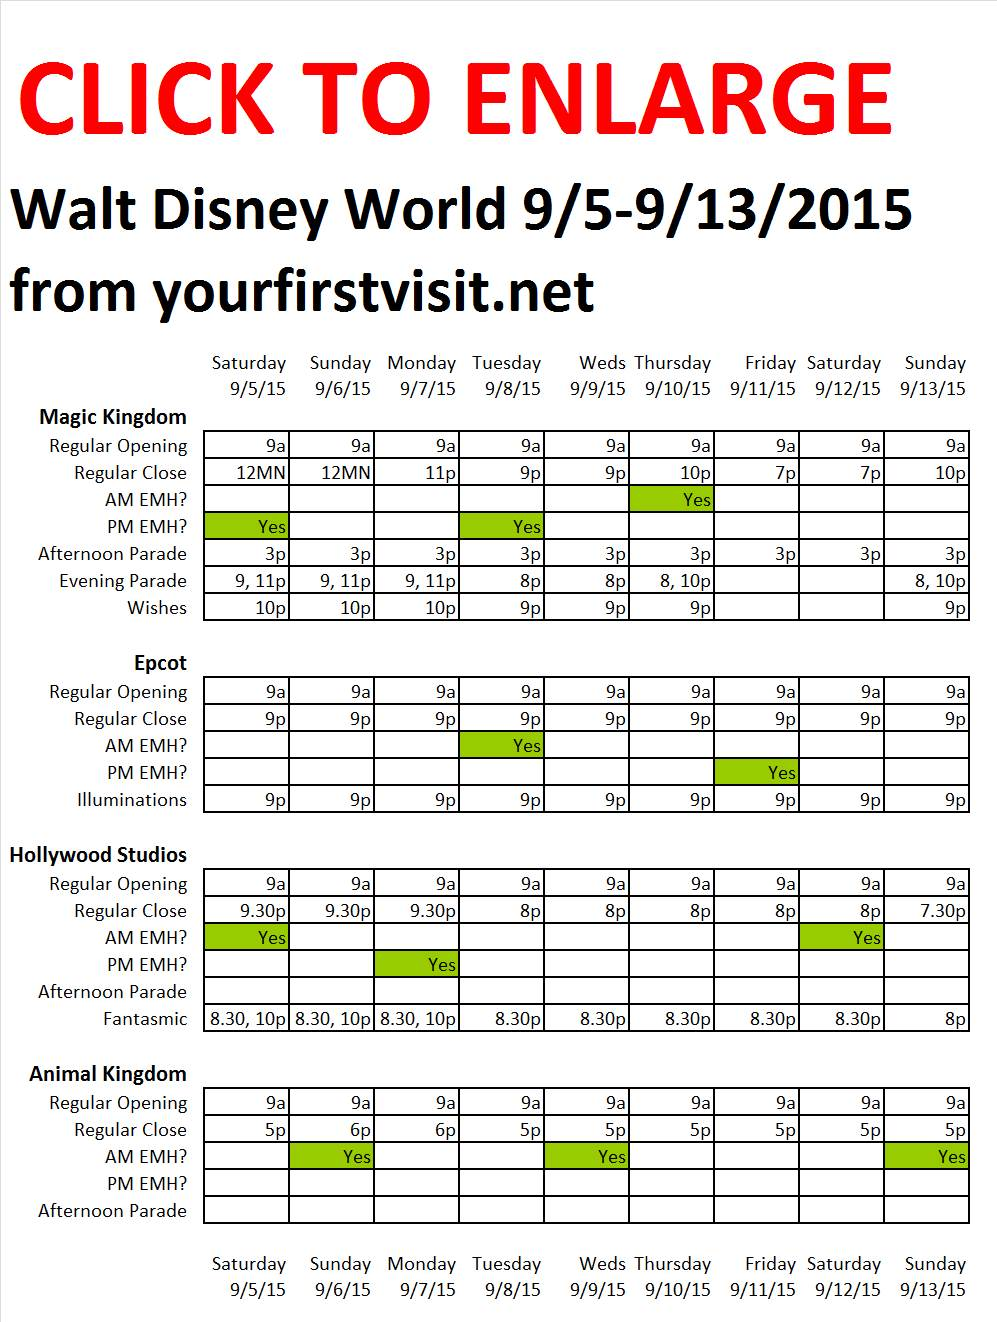 Disney World 9-5 to 9-13-2015 from yourfirstvisit.net